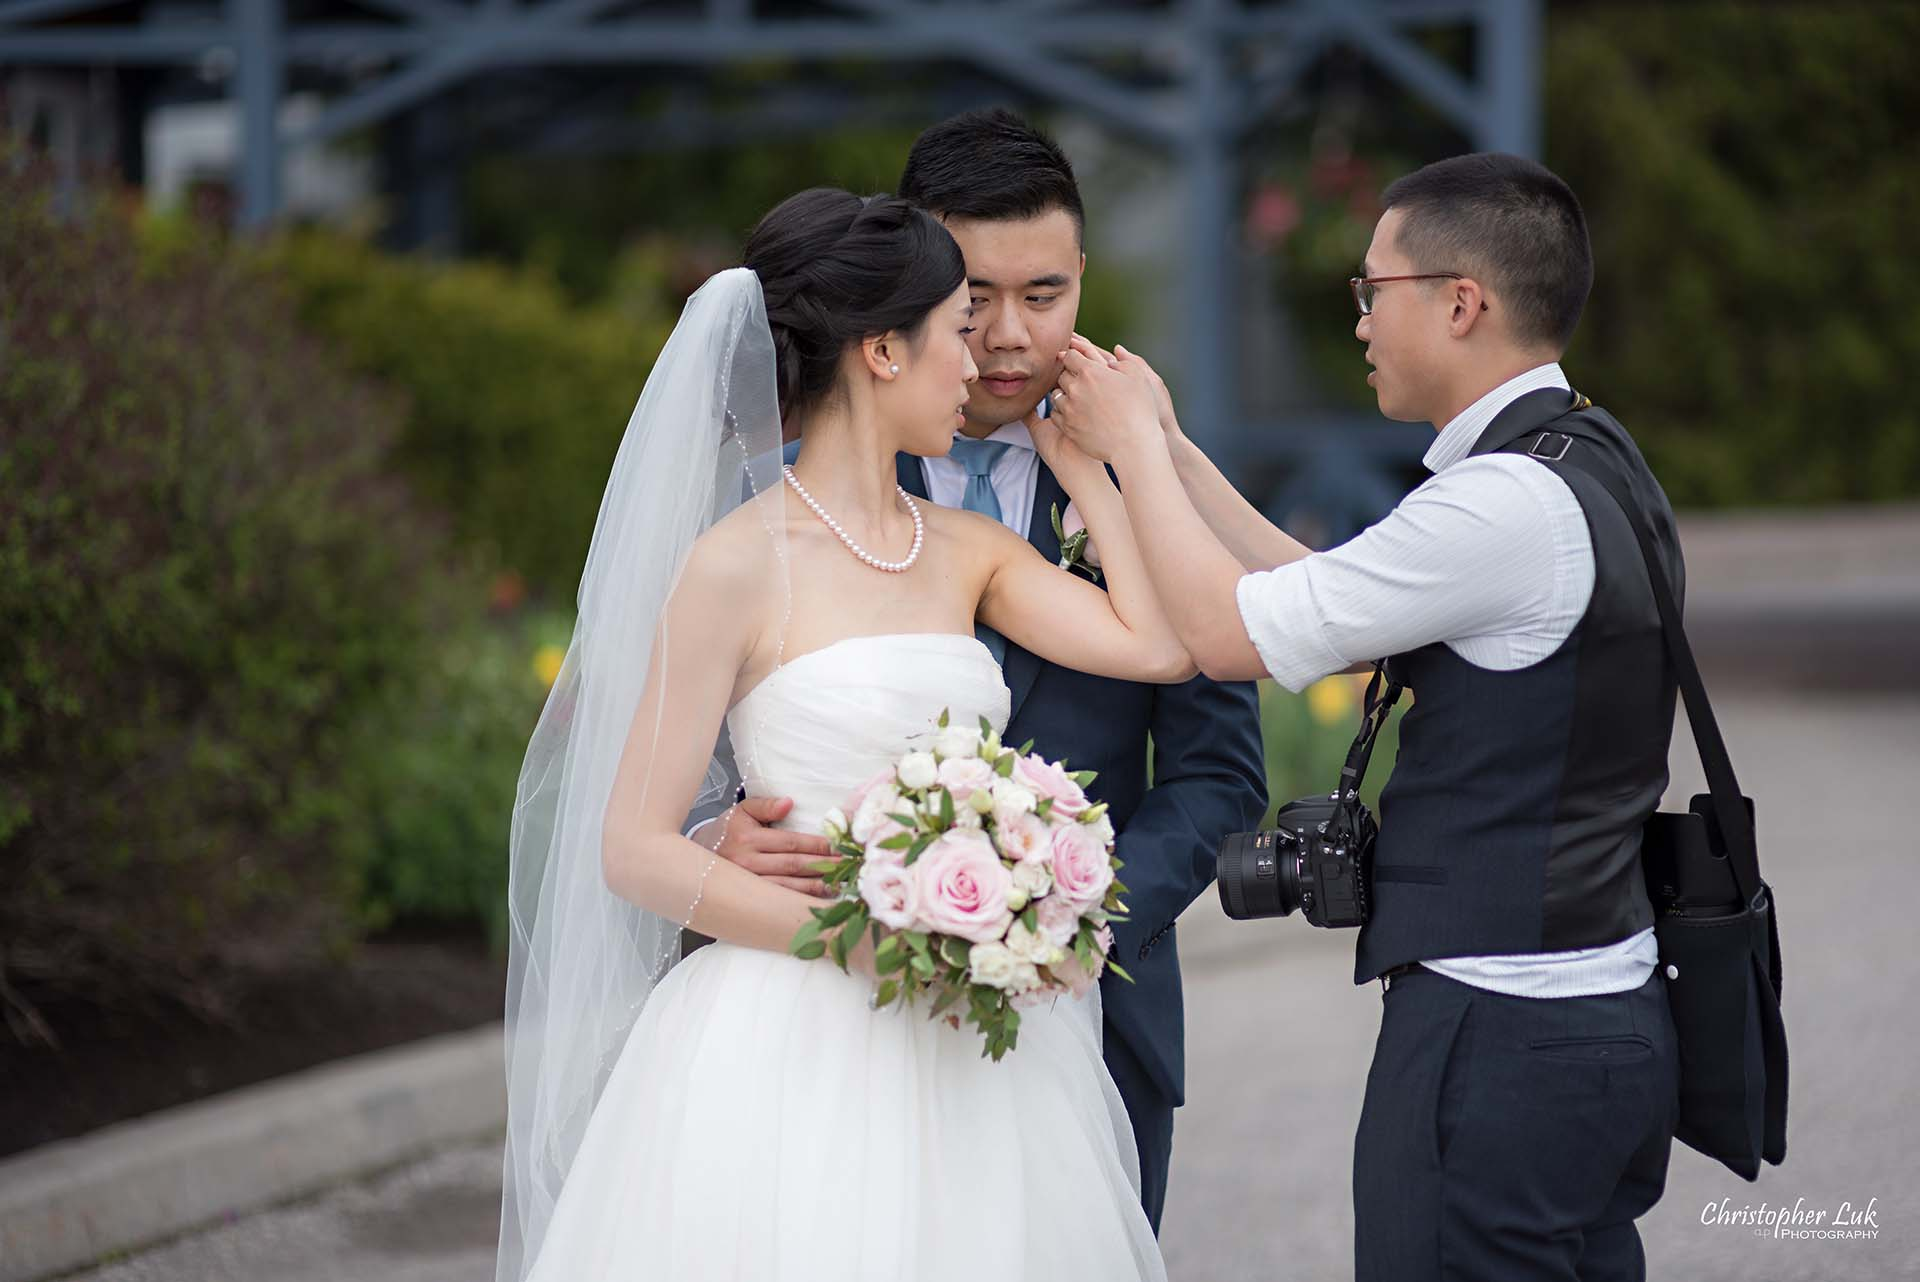 Christopher Luk Toronto Wedding Photographer Behind the Scenes Angus Glen Golf Club Markham Victoria Room Trellis Main Entrance Posing Hands Intimate Bride Groom